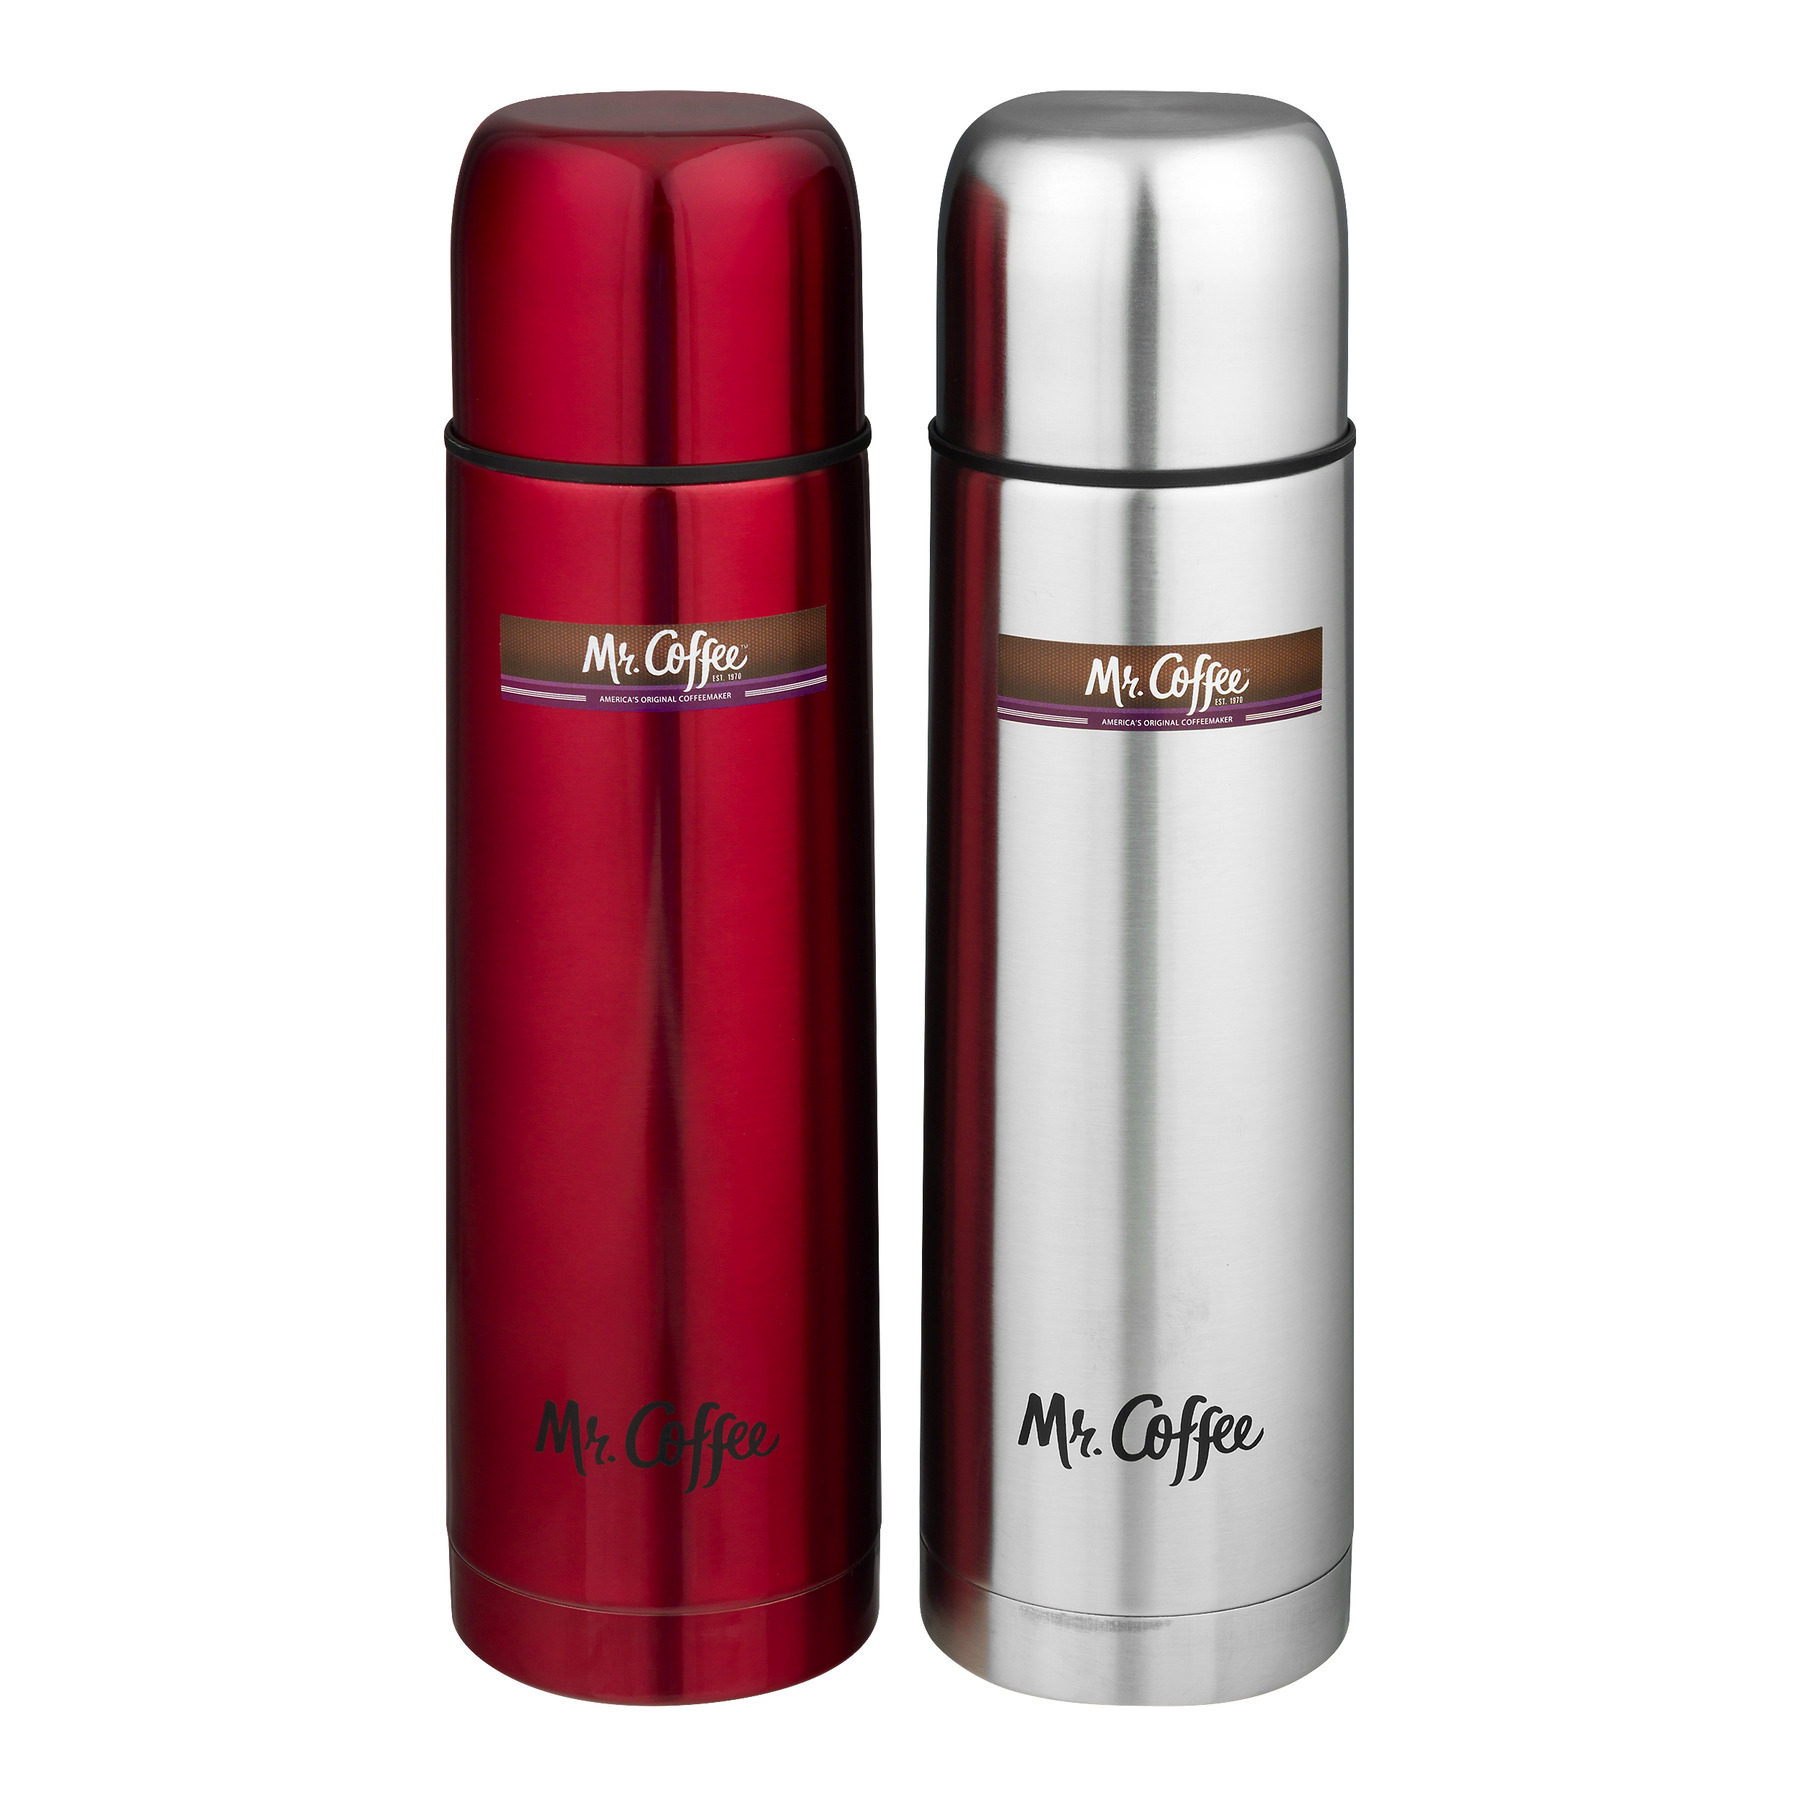 Mr. Coffee Javelin Travel Thermal Bottle - 2 PK, 2.0 PACK